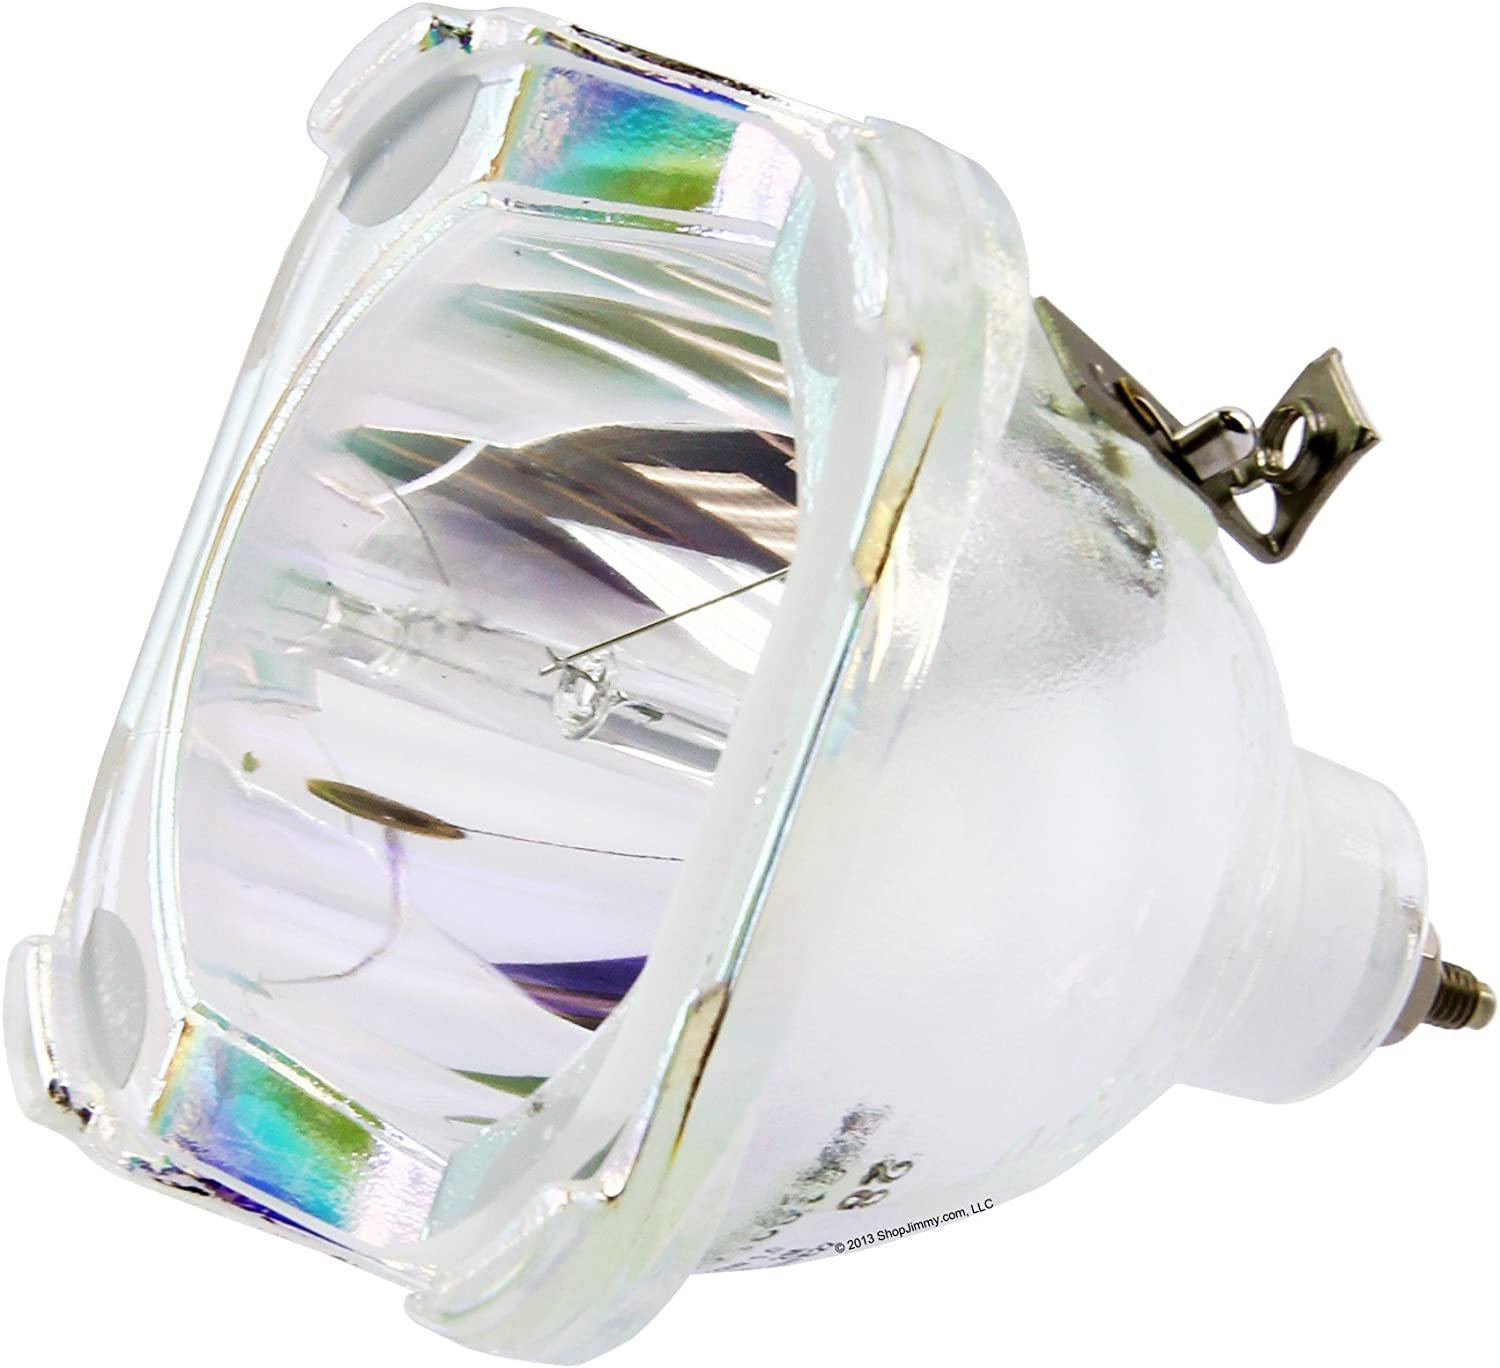 Assembly Philips Bulb Inside XpertMall Replacement Lamp Housing Ask A9